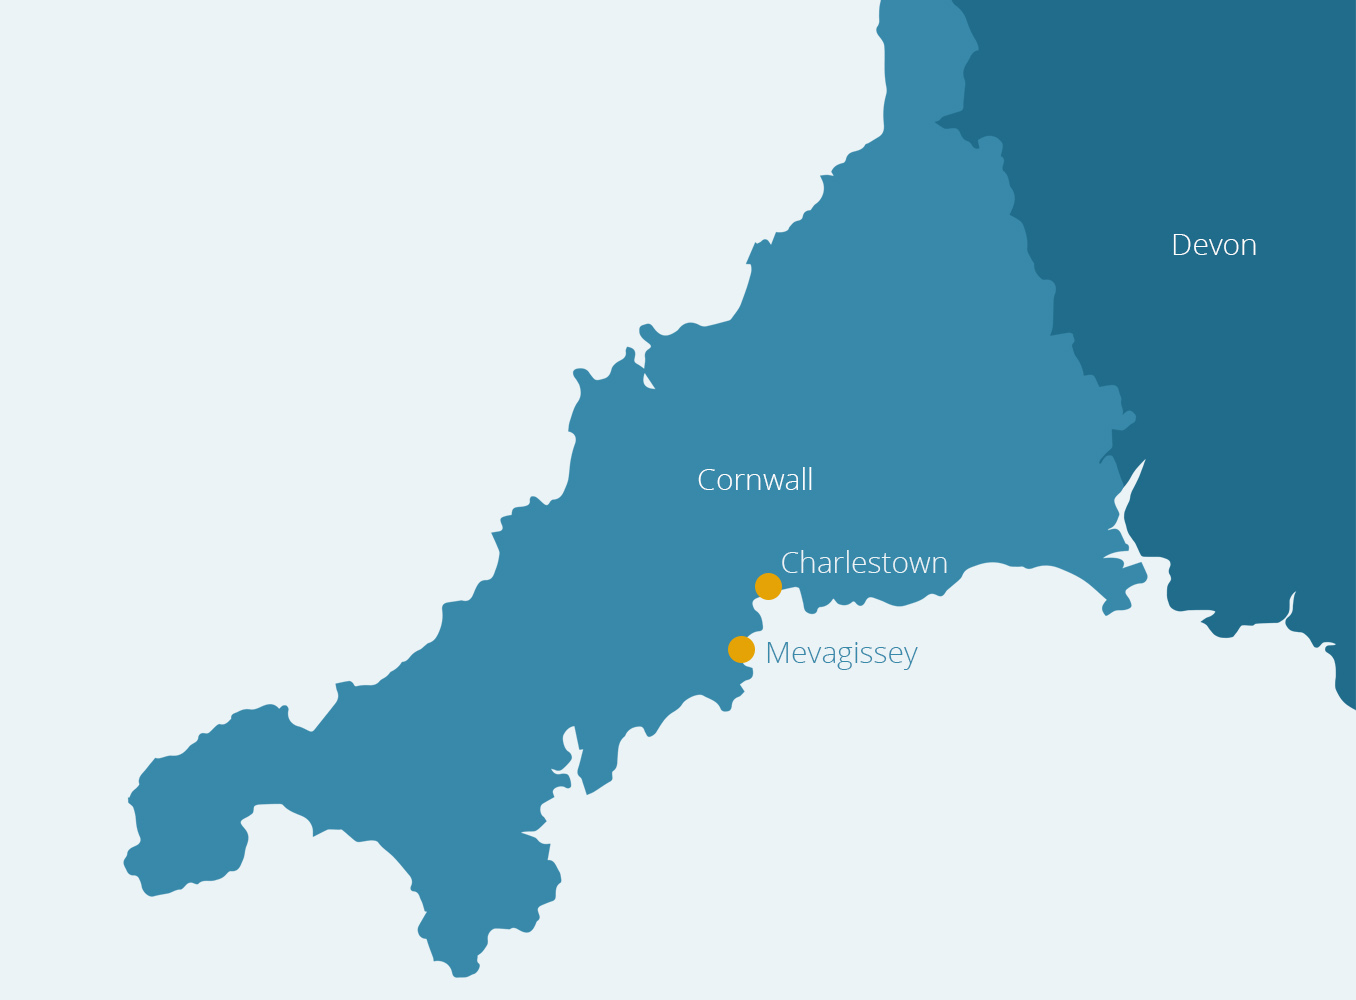 Map of Cornwall with Mevagissey and Charlestown marked.